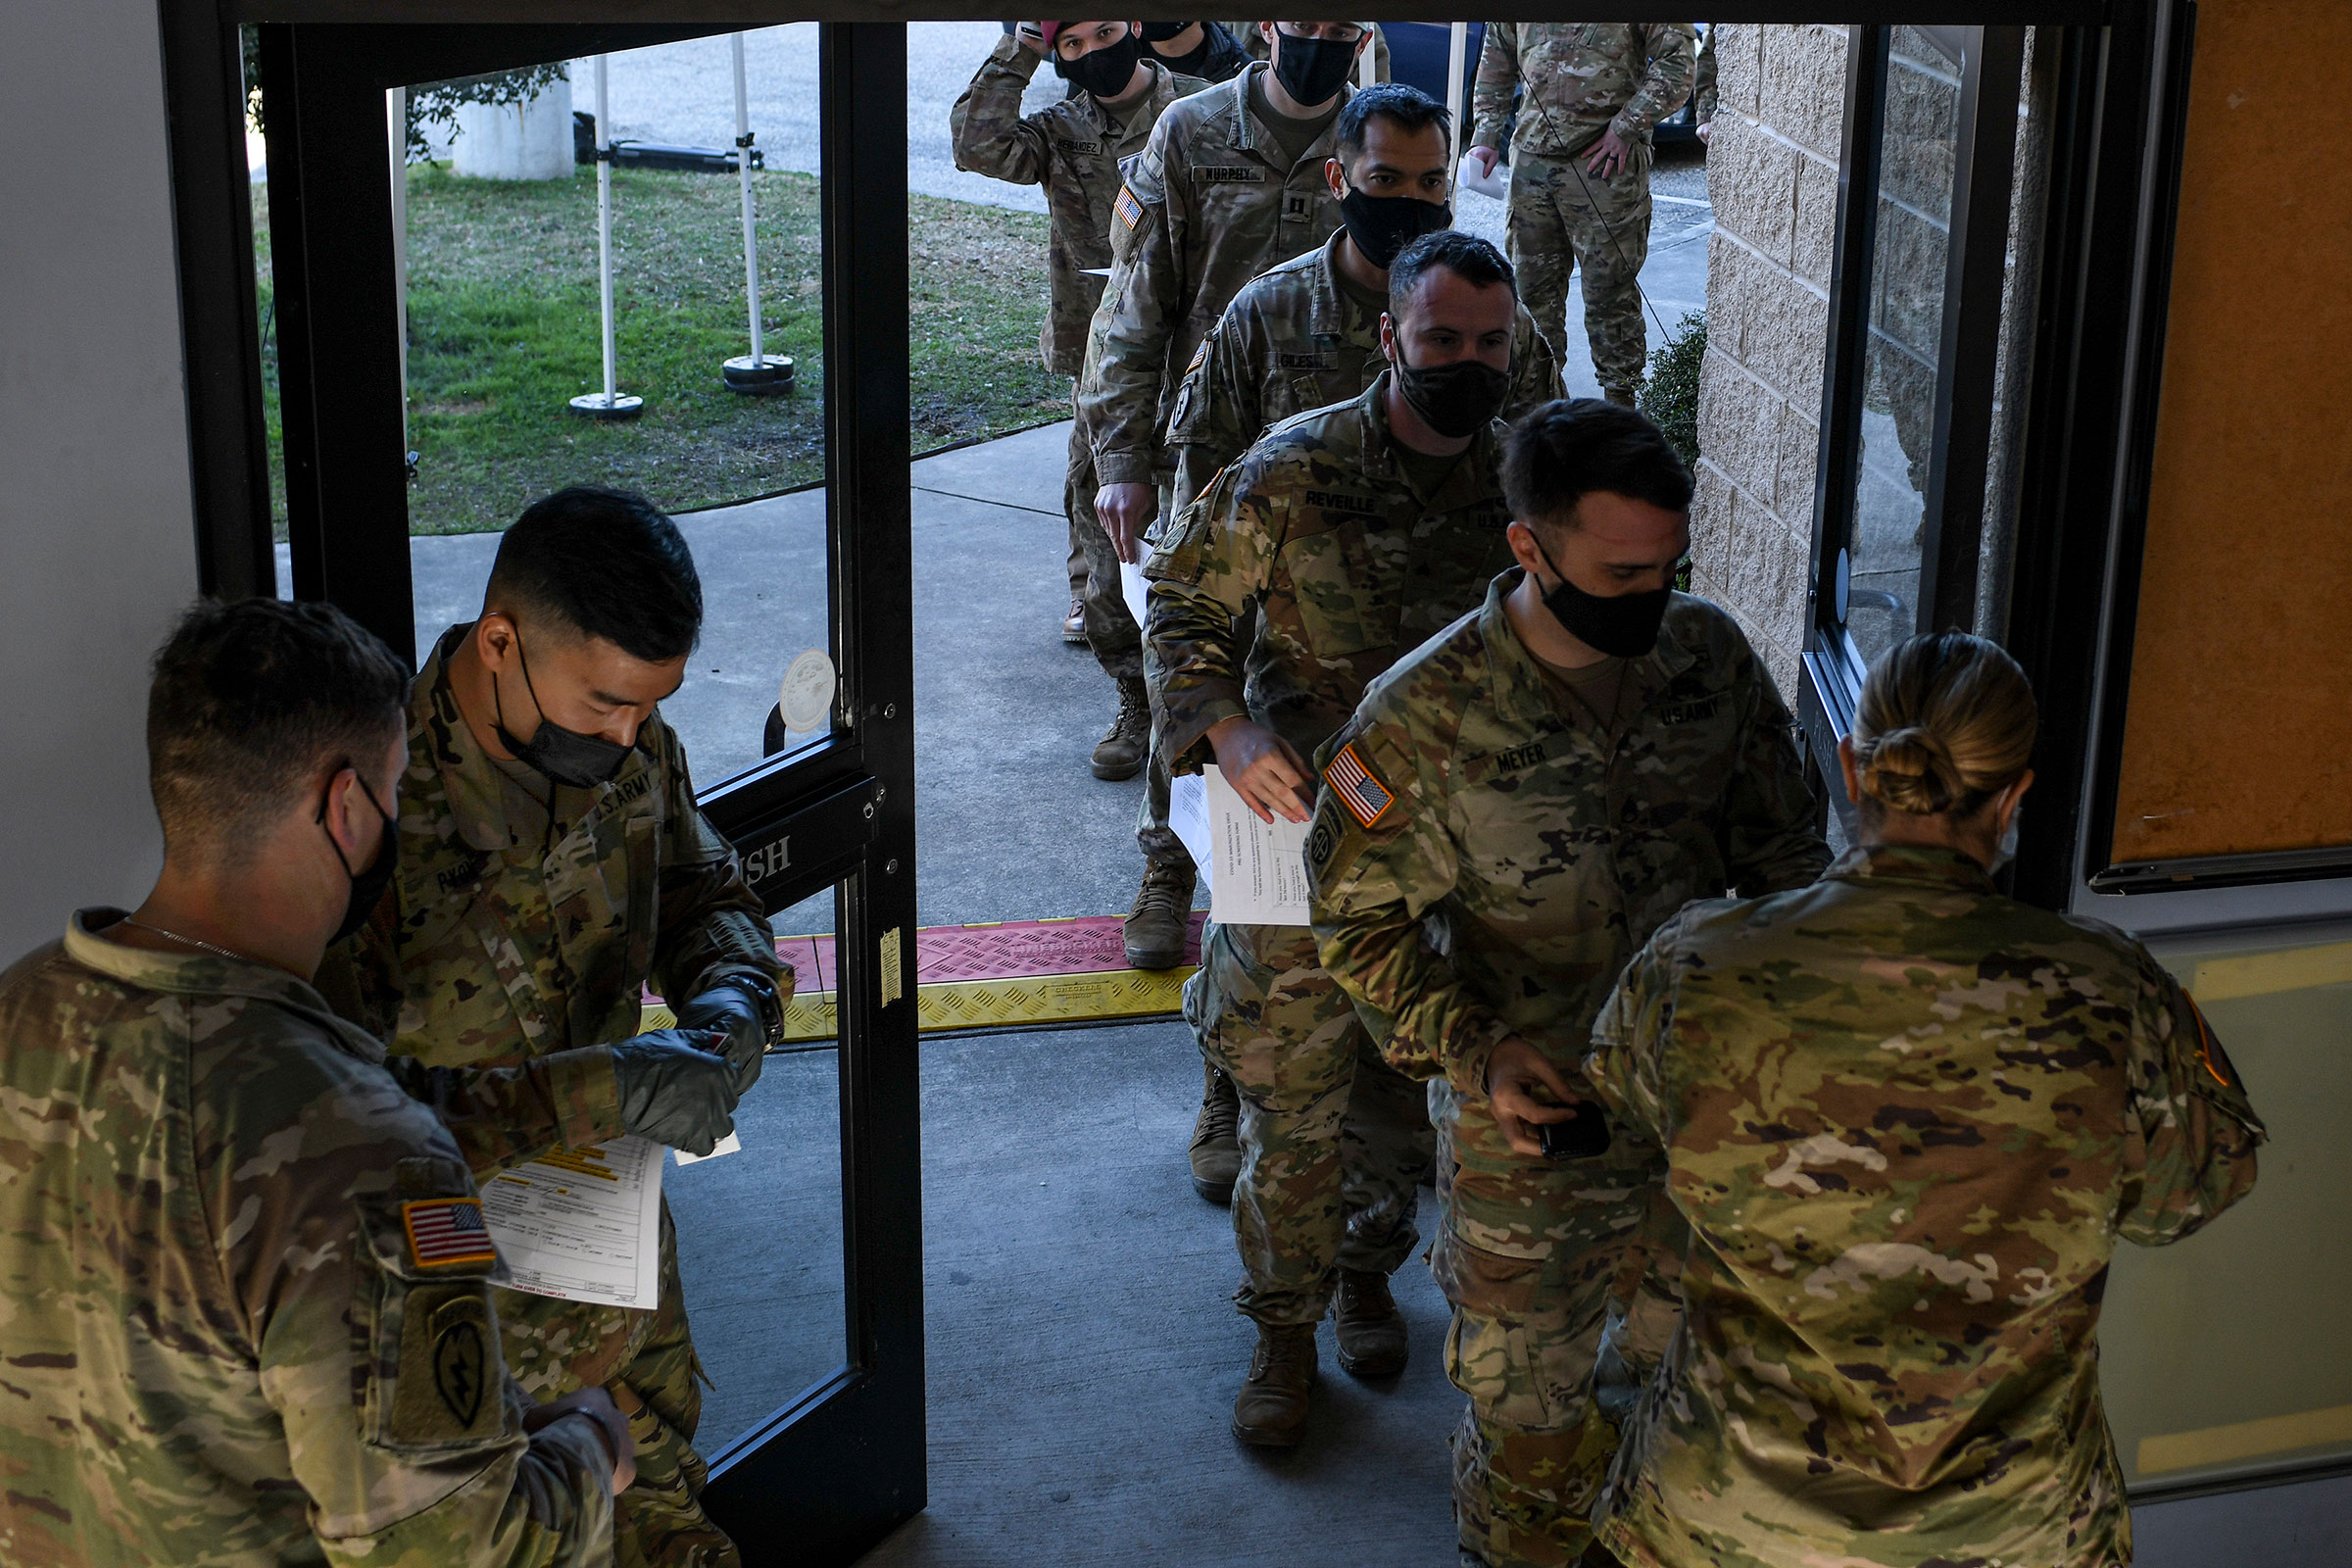 Soldiers line up for a medical screening before receiving the coronavirus vaccine at Fort Bragg in North Carolina, Feb. 24, 2021.